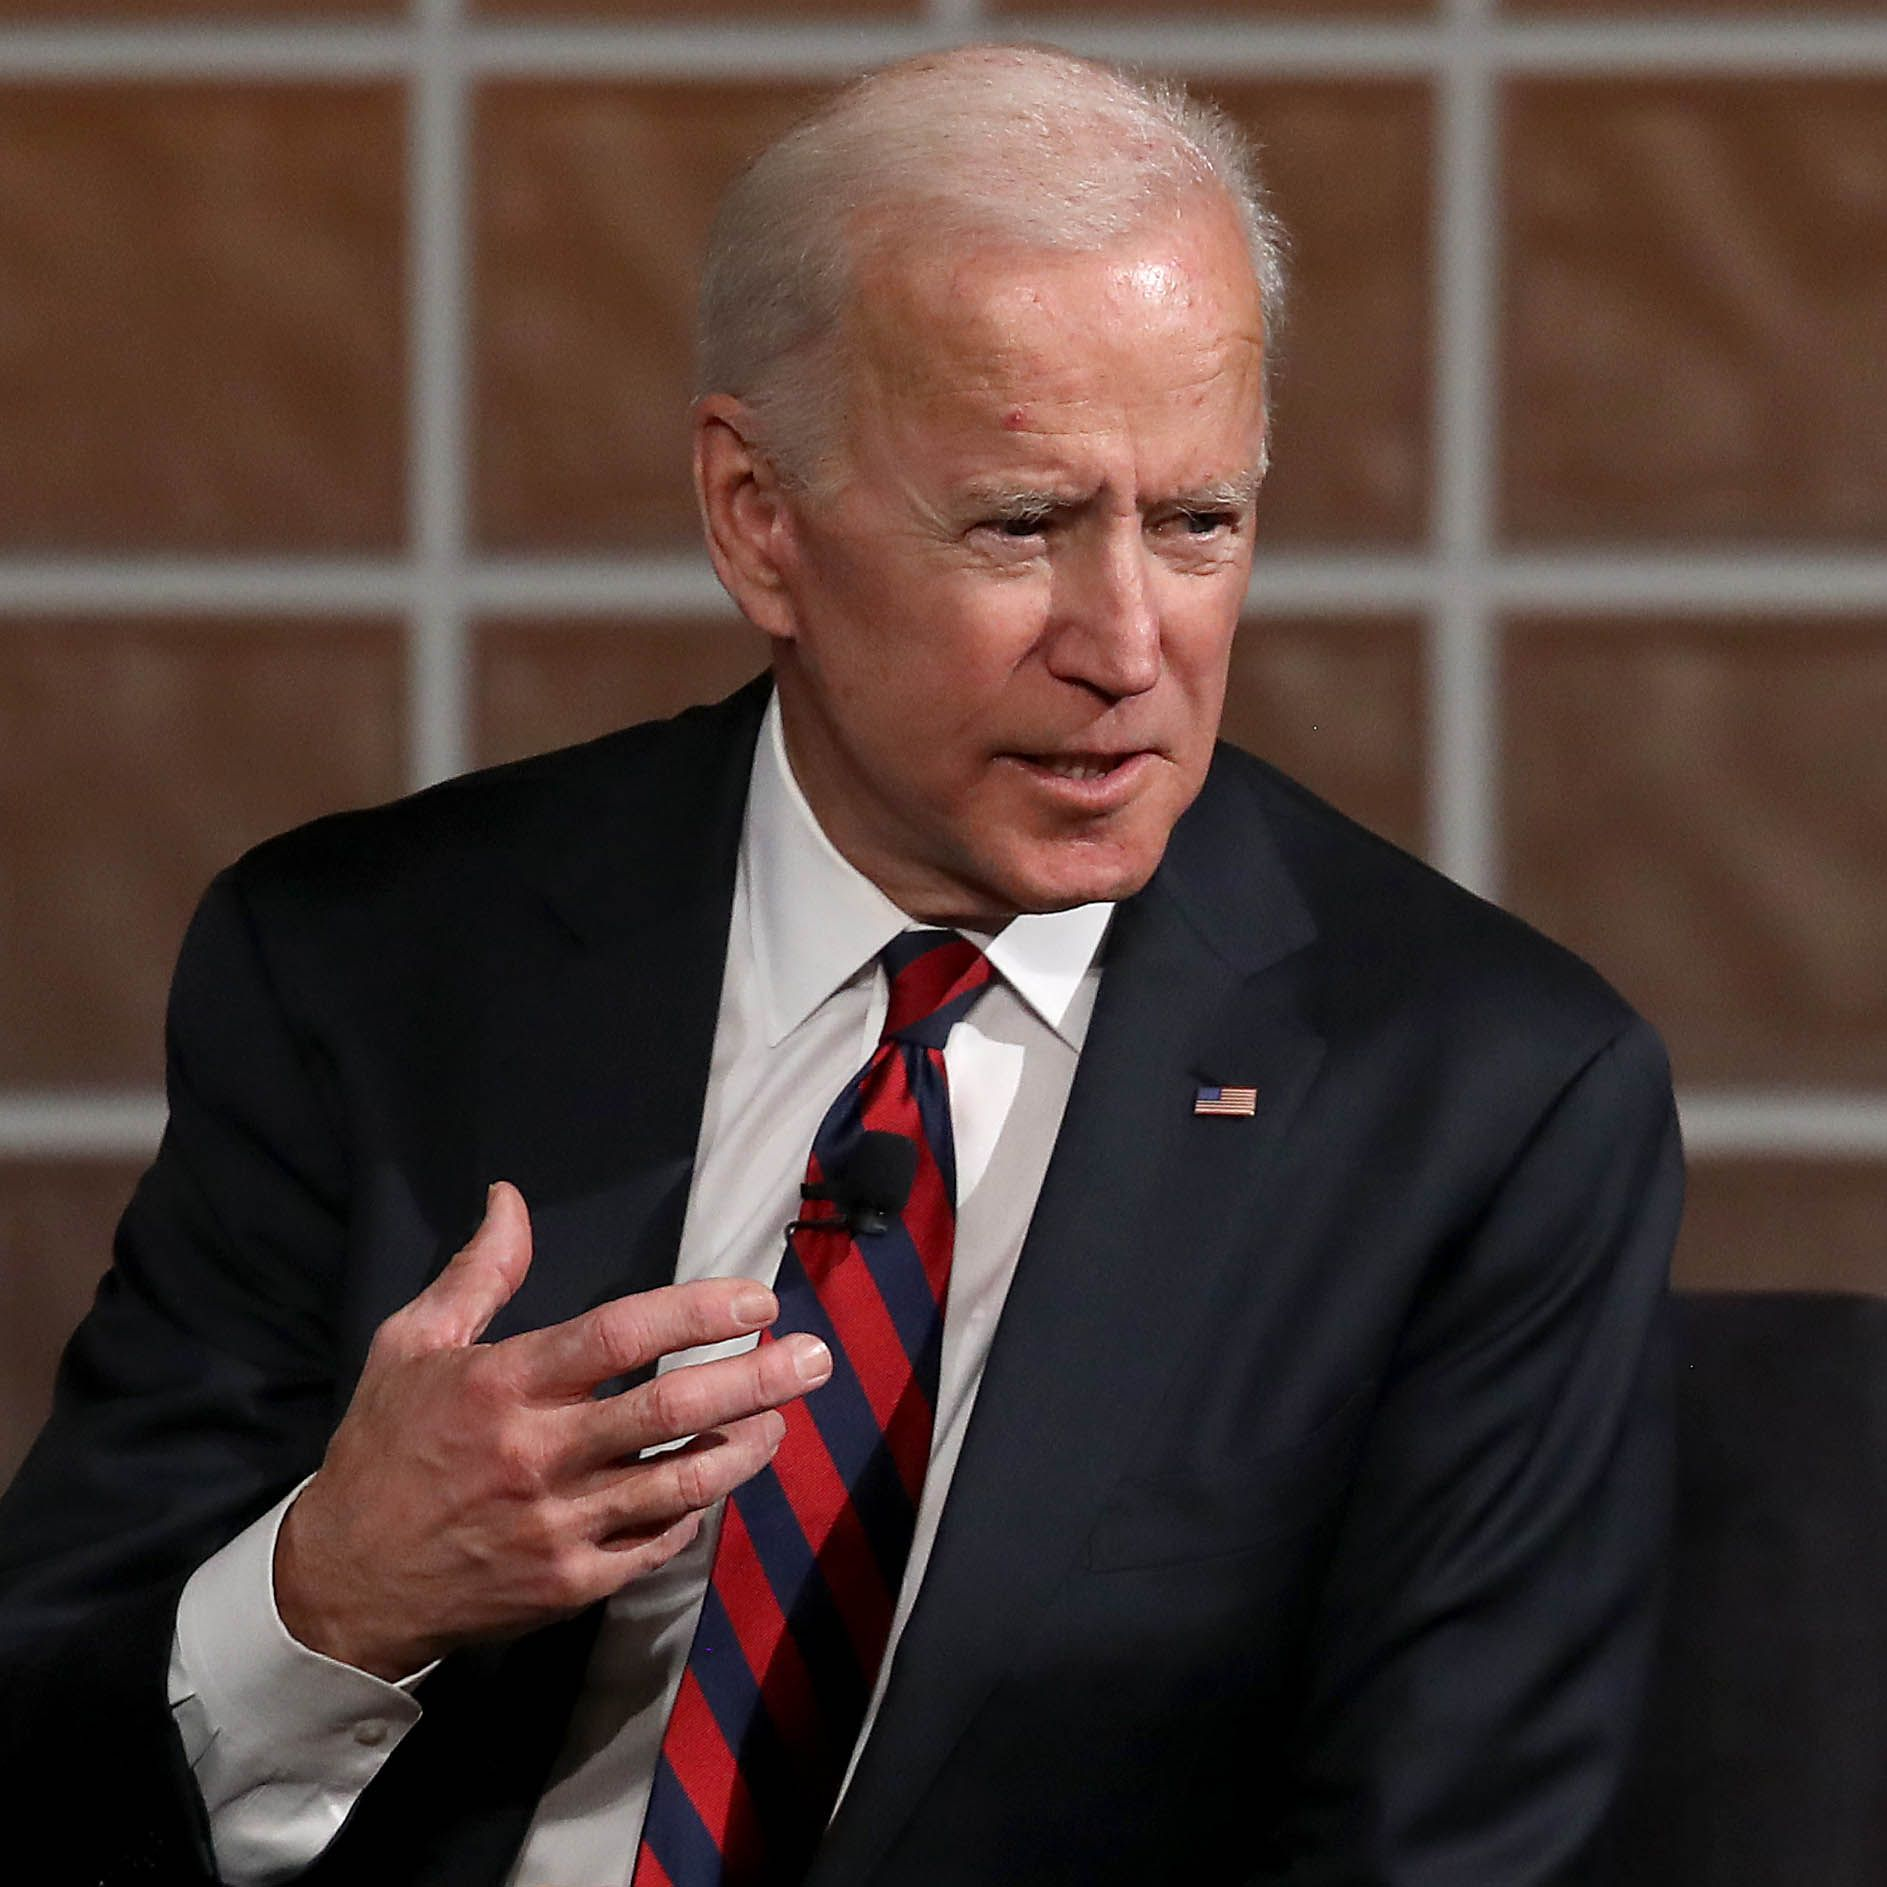 Joe Biden was criticized recently for anti-reparation comments he made—in 1975.